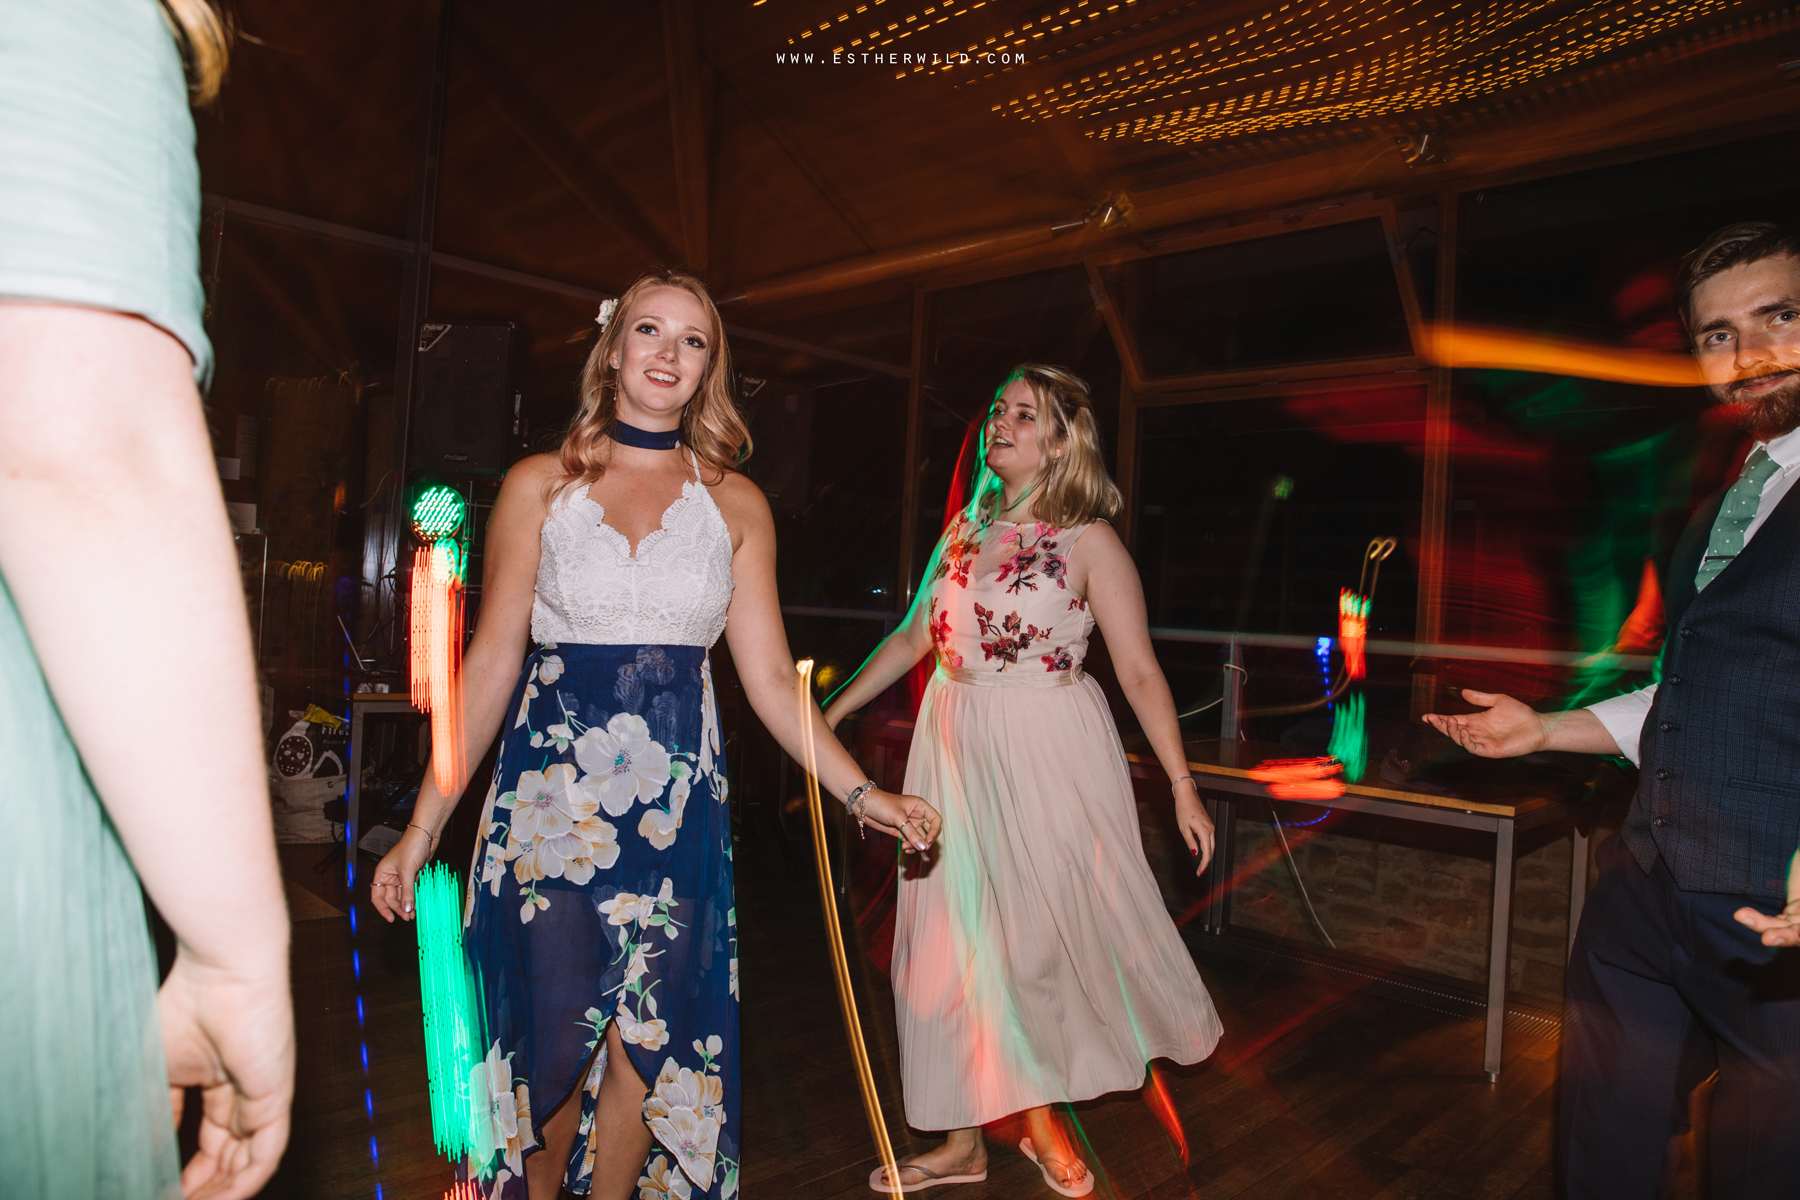 Norwich_Castle_Arcade_Grosvenor_Chip_Birdcage_Cathedral_Cloisters_Refectory_Wedding_Photography_Esther_Wild_Photographer_Norfolk_Kings_Lynn_3R8A3357.jpg